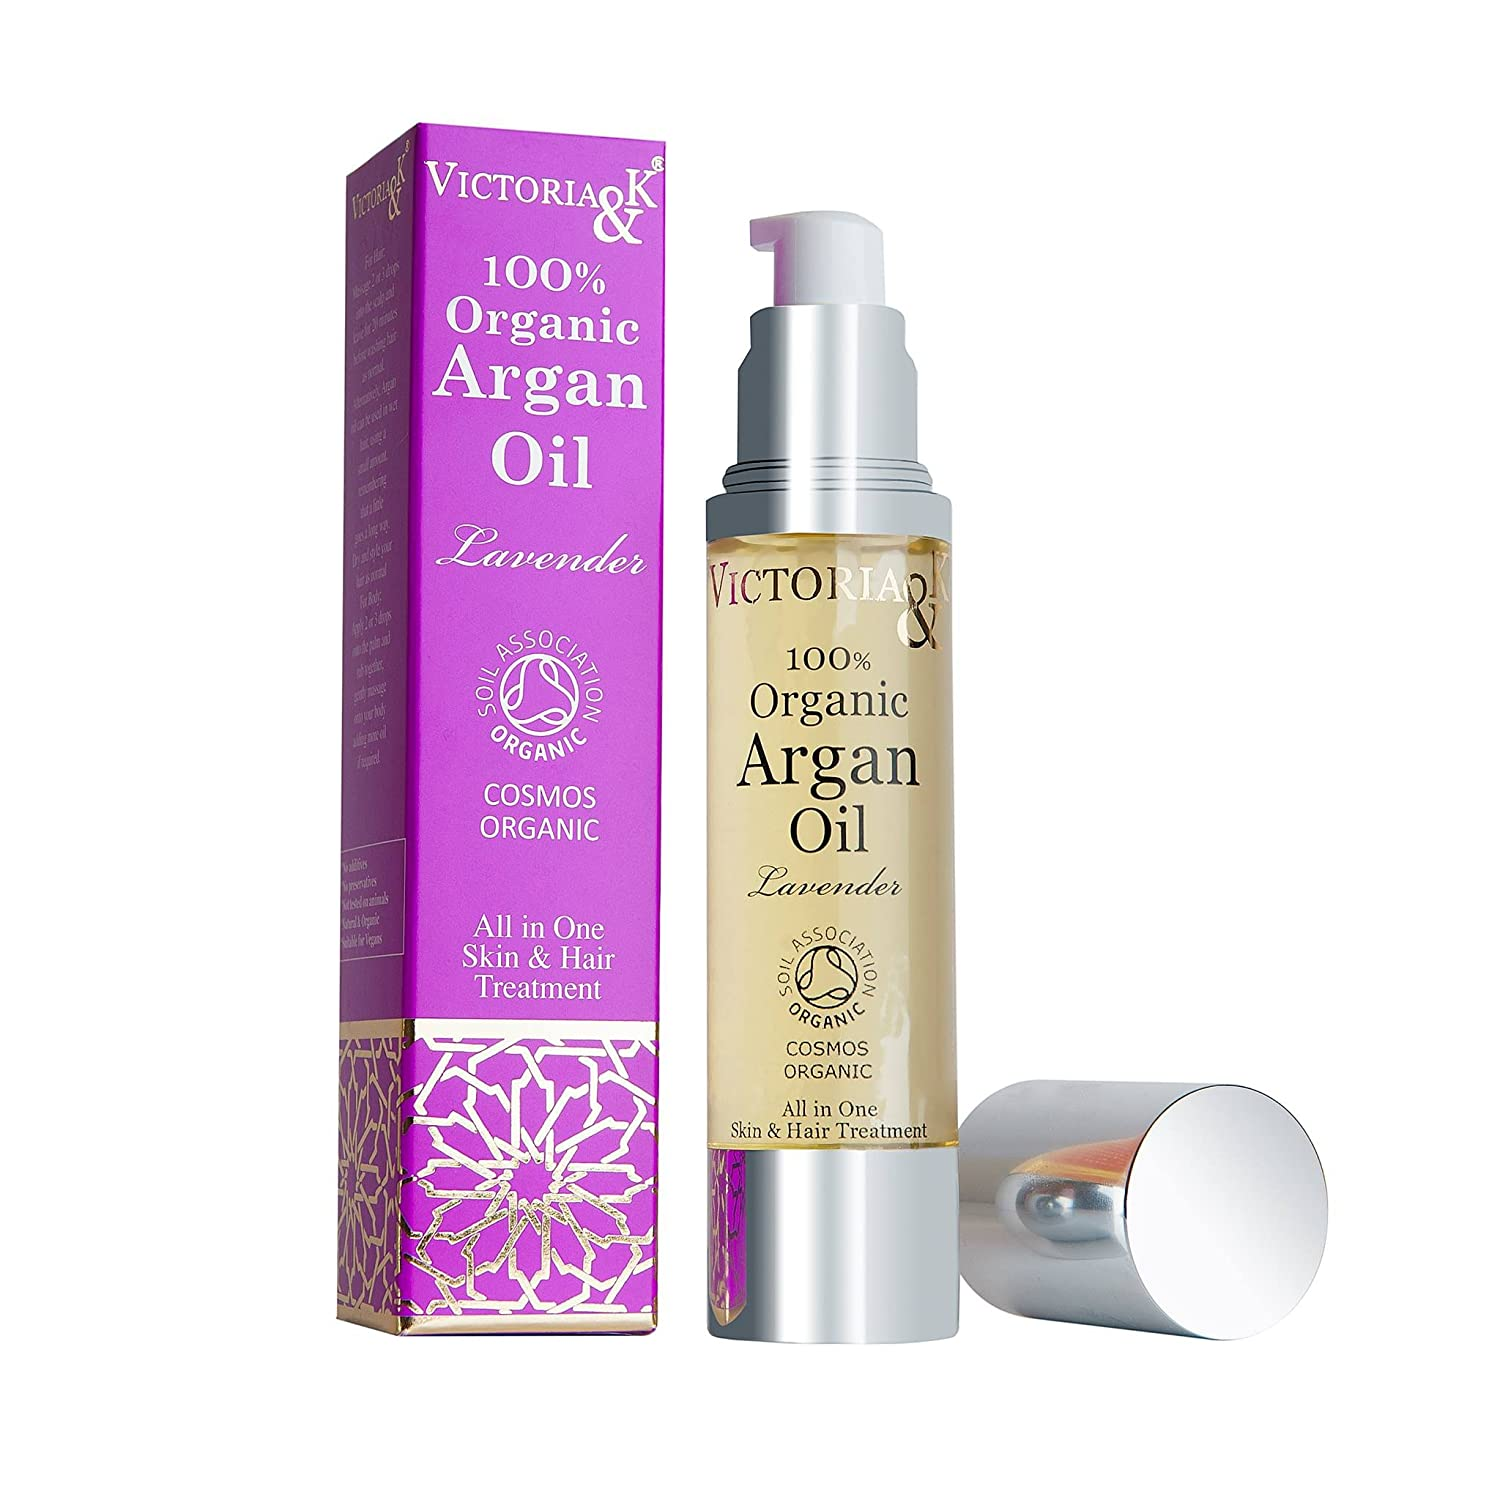 Best Pure Organic Moroccan Argan Oil | Premium Quality for Moisturising Beard, Body, Cuticles, Scalp, Face, Hair, Skin & Nails | For All Dry Skin Conditions, even Acne, Psoriasis, Eczema | Vegan Victoria & K